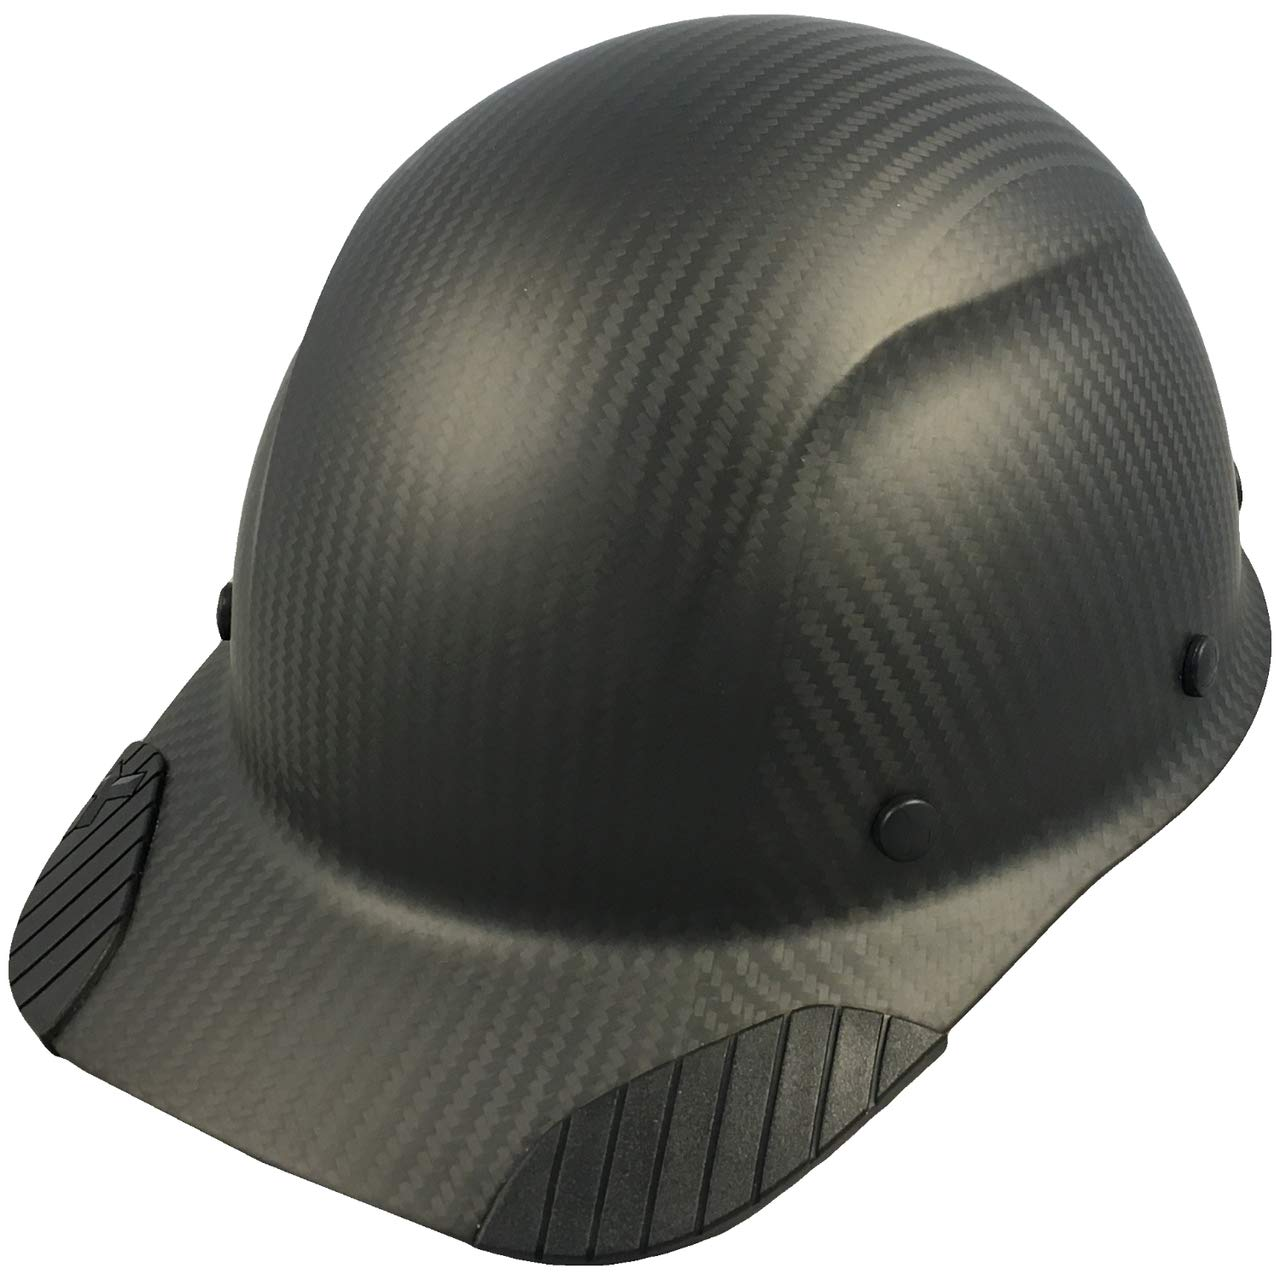 DAX Actual Carbon Fiber Cap Style Hard Hat - Matte Black by DAX (Image #1)